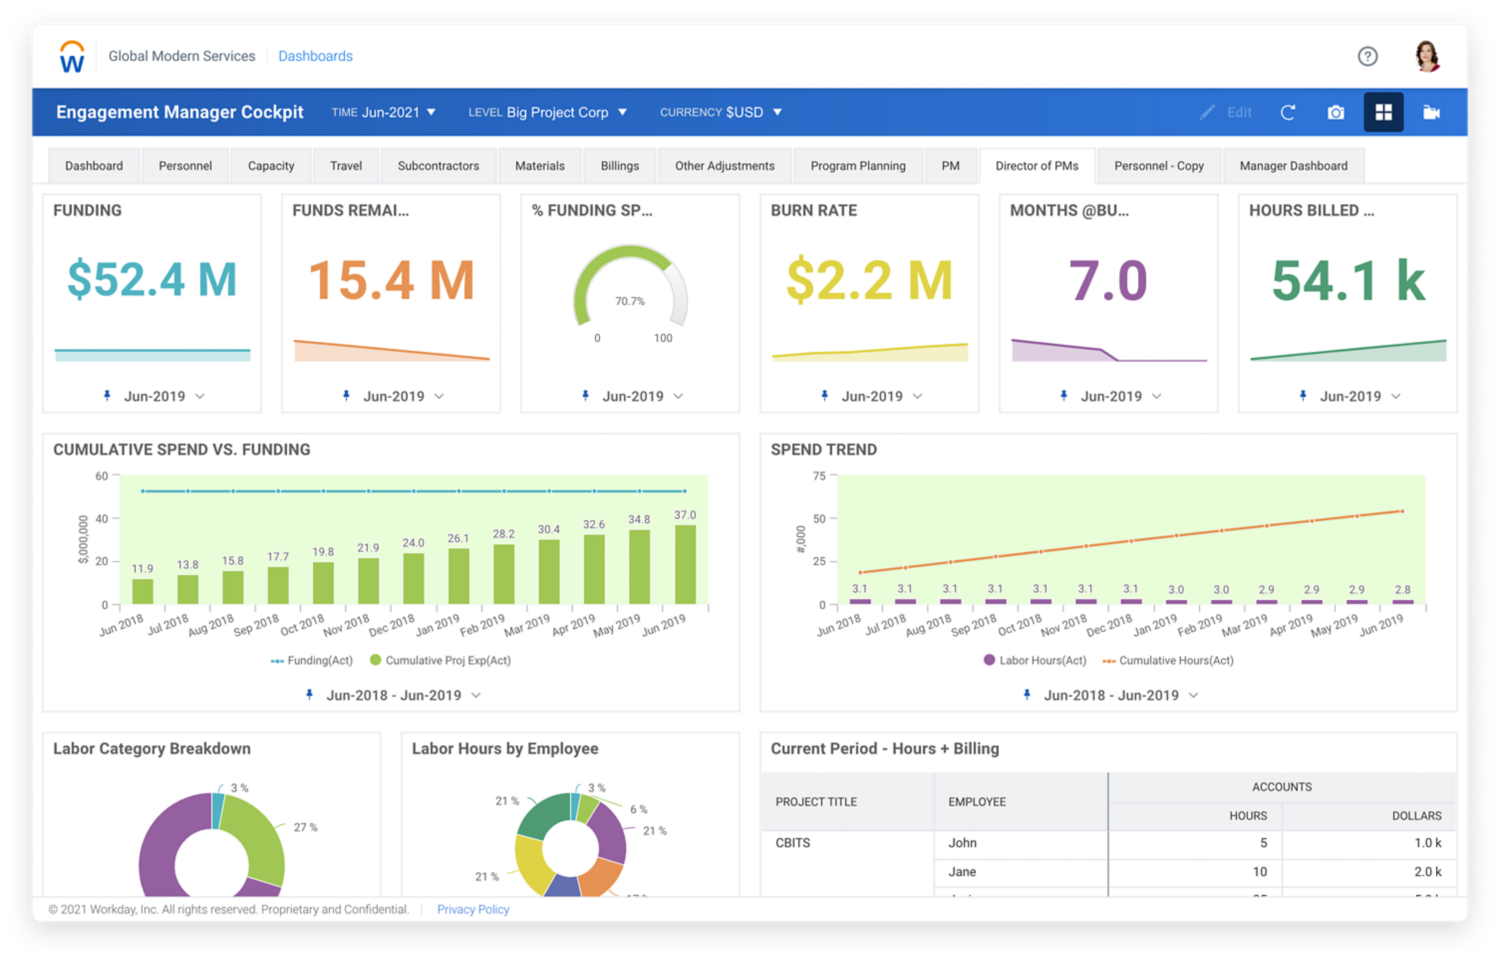 Marketing planning dashboard in Workday Adaptive Planning, showing numerical values to analyze marketing pipeline by region, quarter, and spend.